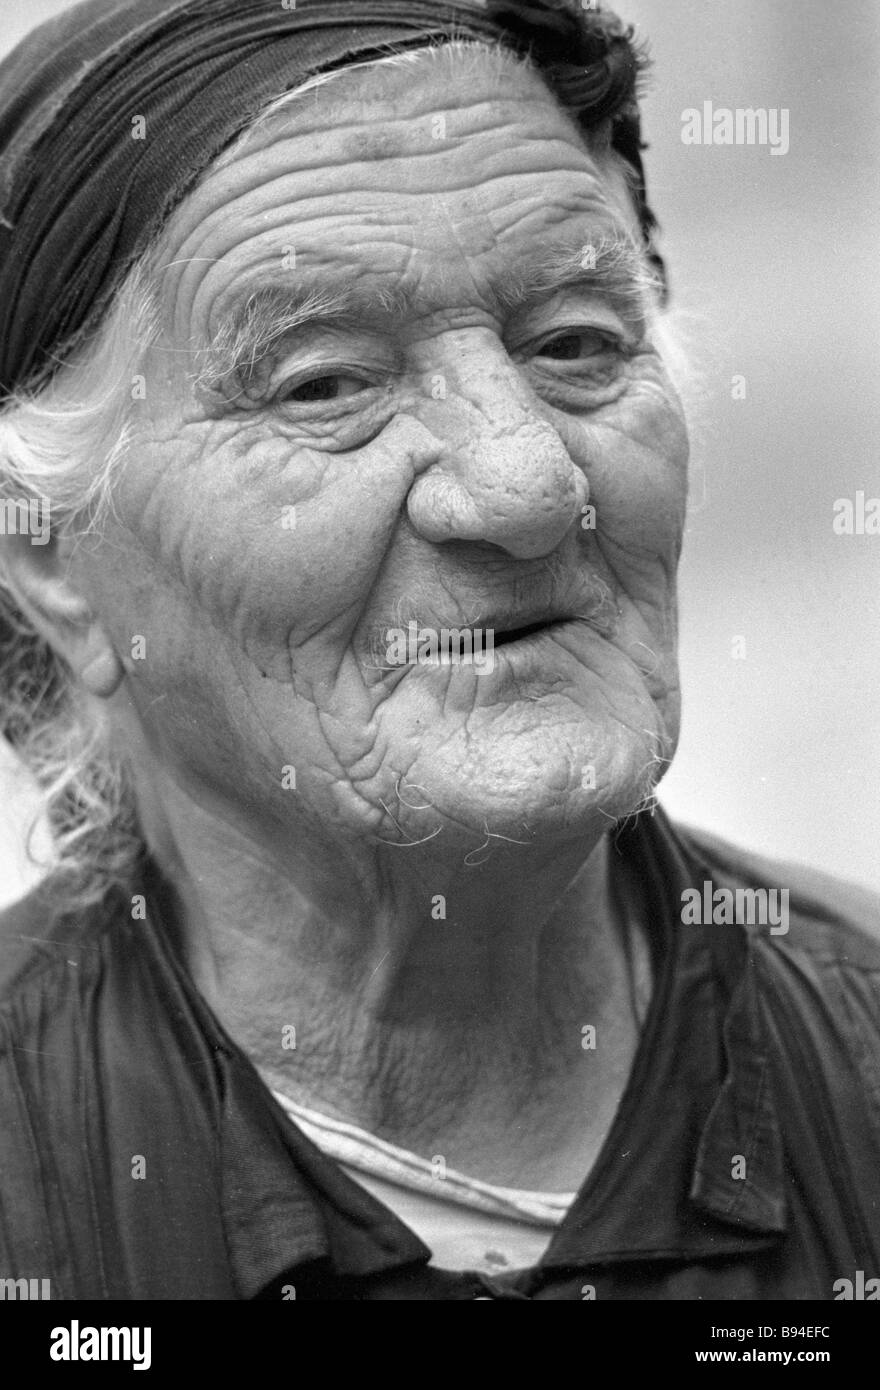 The eldest resident of the city Kafan aged 92 - Stock Image